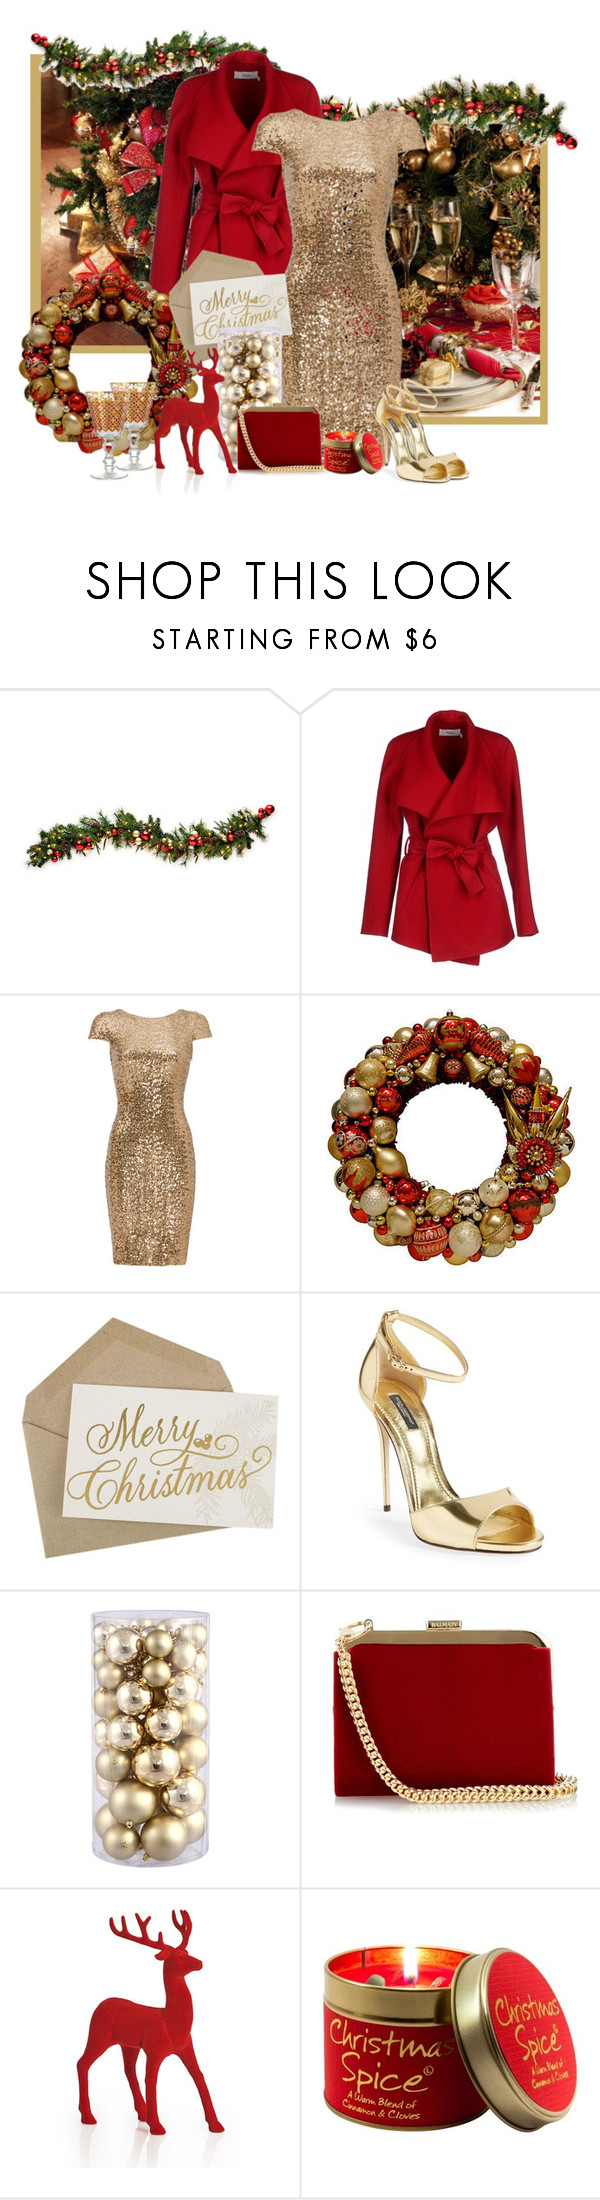 """""""Red and Gold"""" by kimzarad1 ❤ liked on Polyvore featuring BGN, Badgley Mischka, Dolce&Gabbana, Balmain, Lily-Flame, Patina Vie, RedAndGold and HolidayParty"""